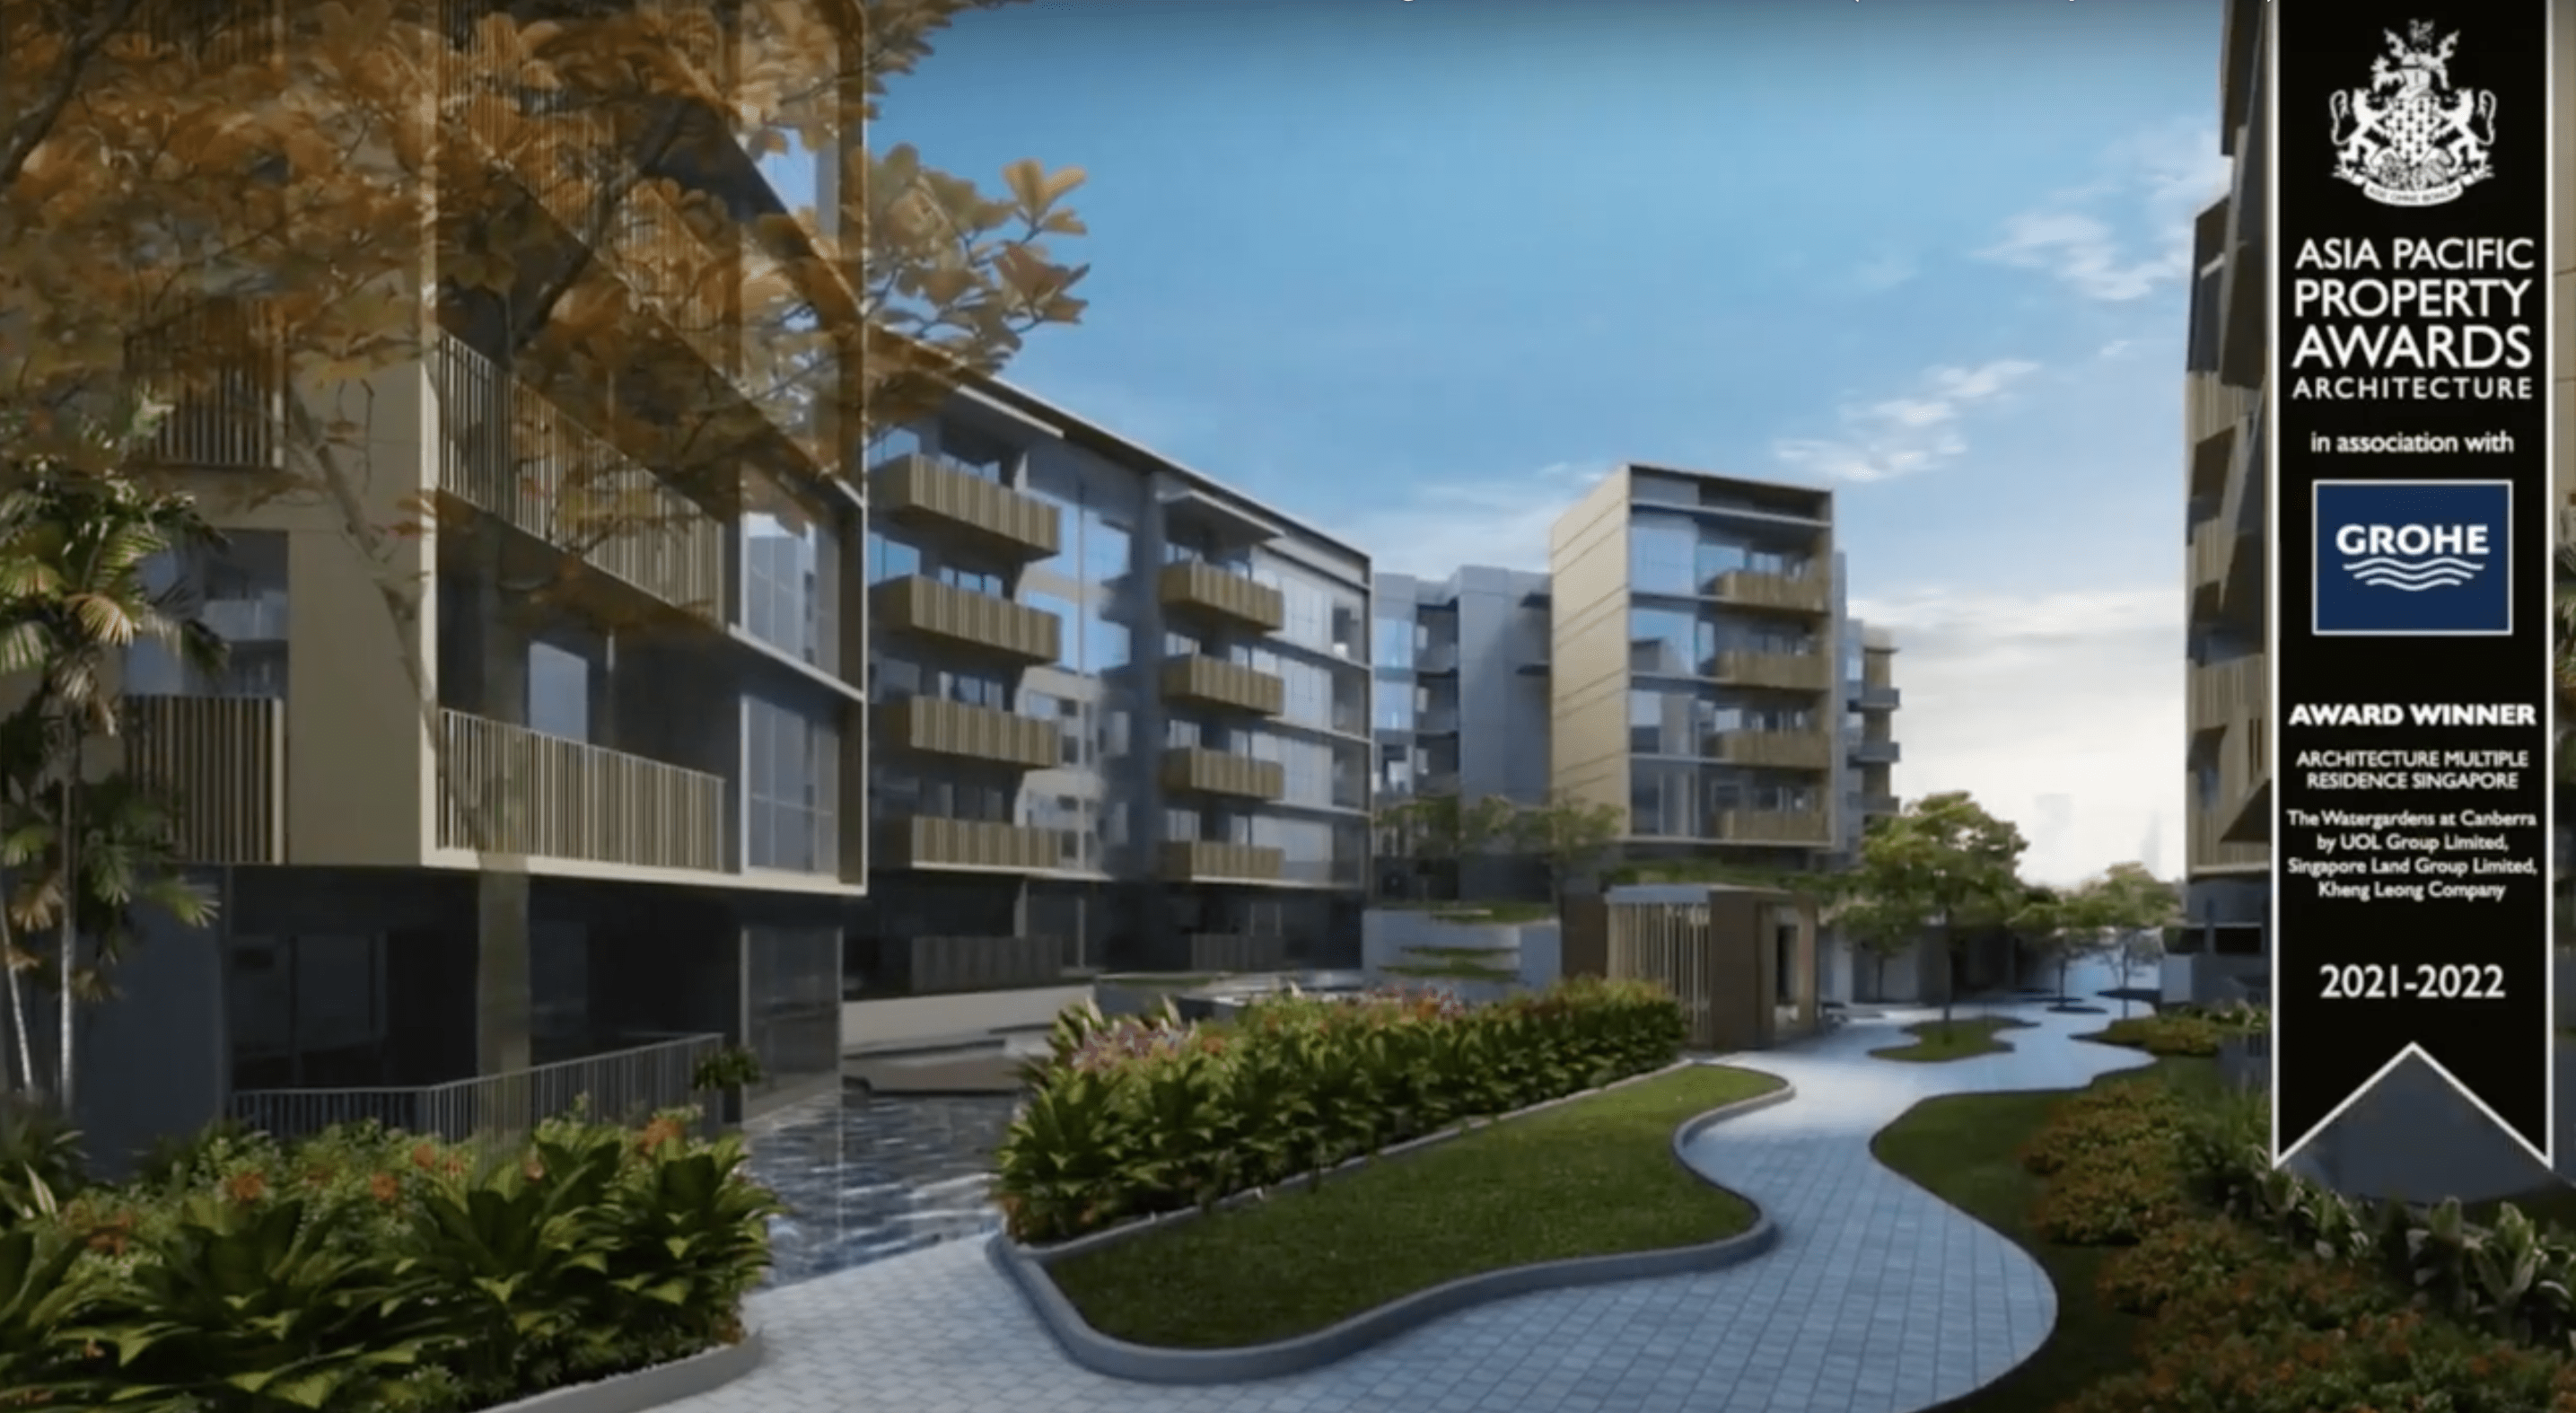 The Watergardens at Canberra New Launch 2021 landscape view 4